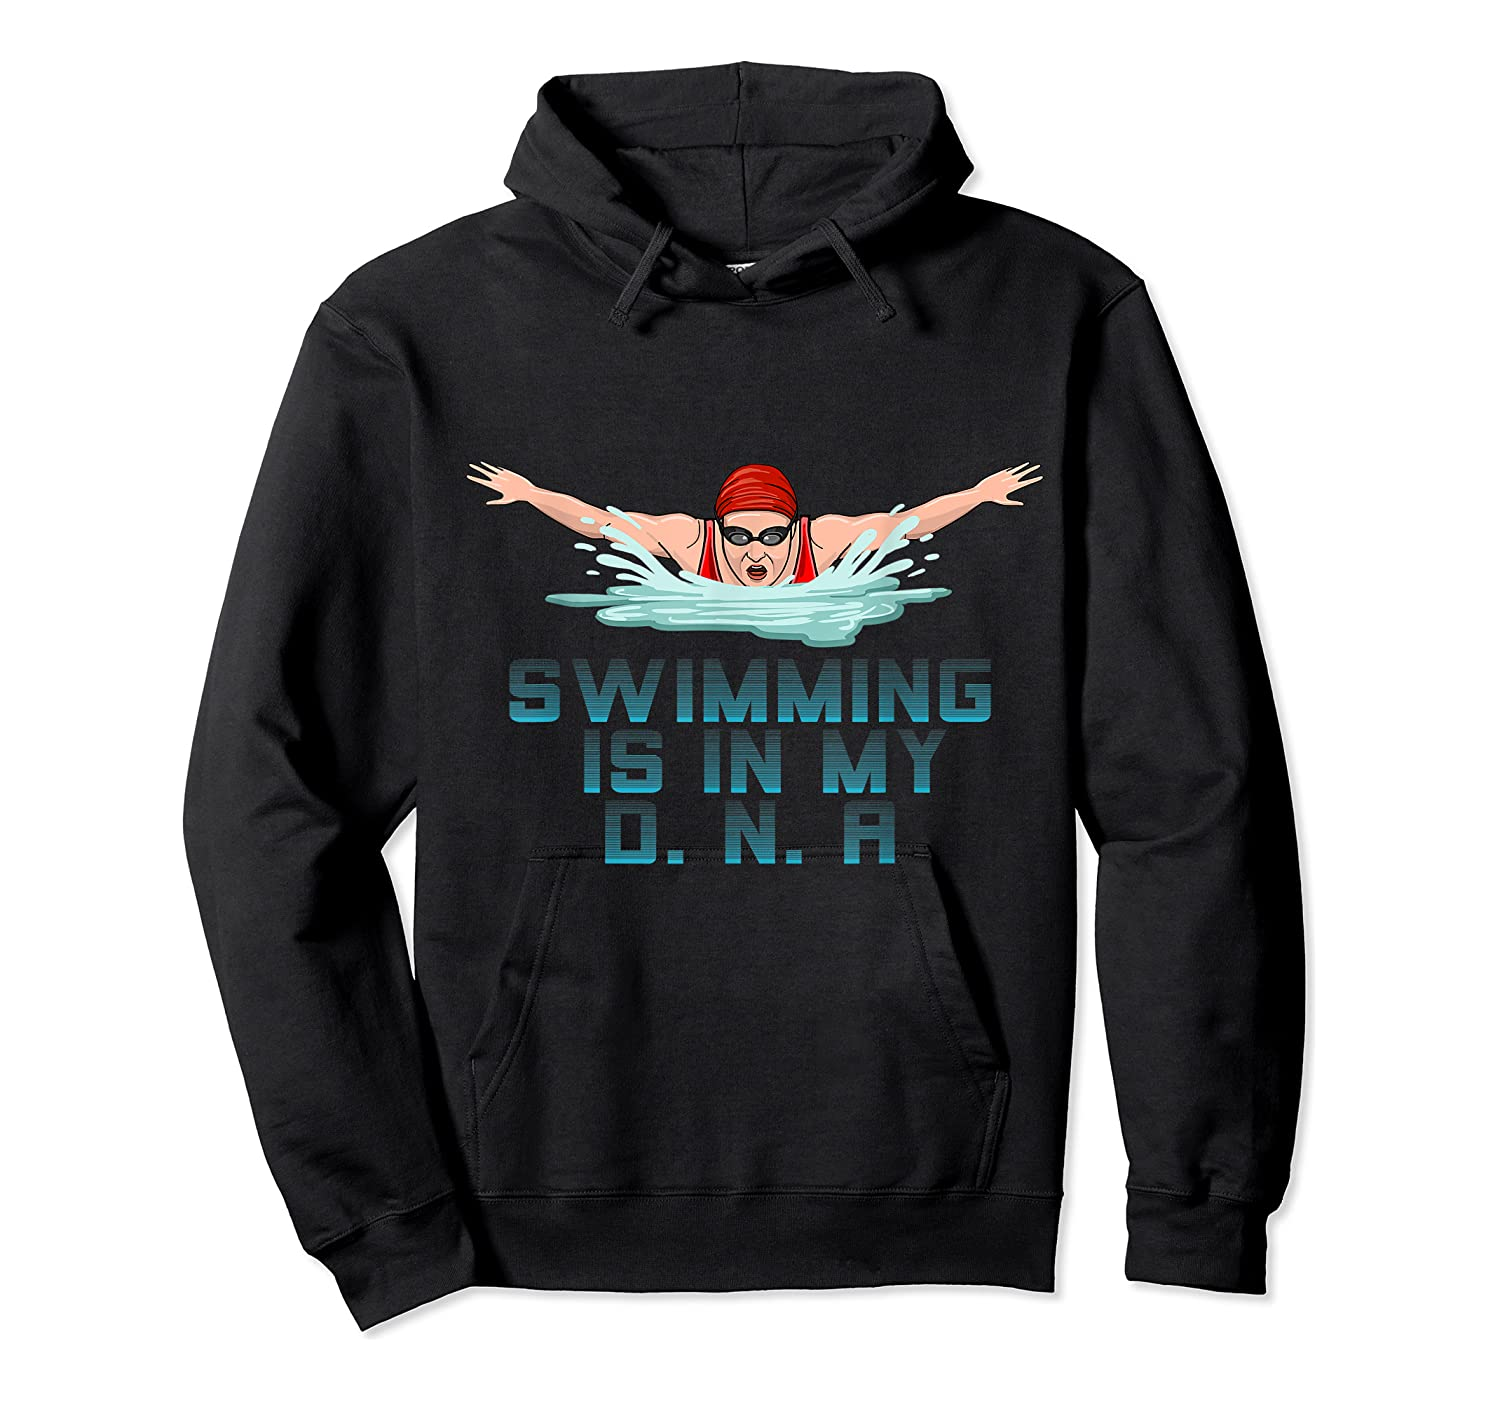 Swimming Cap Goggles Swim Love Funny Swimmer Girl Dna Shirts Unisex Pullover Hoodie